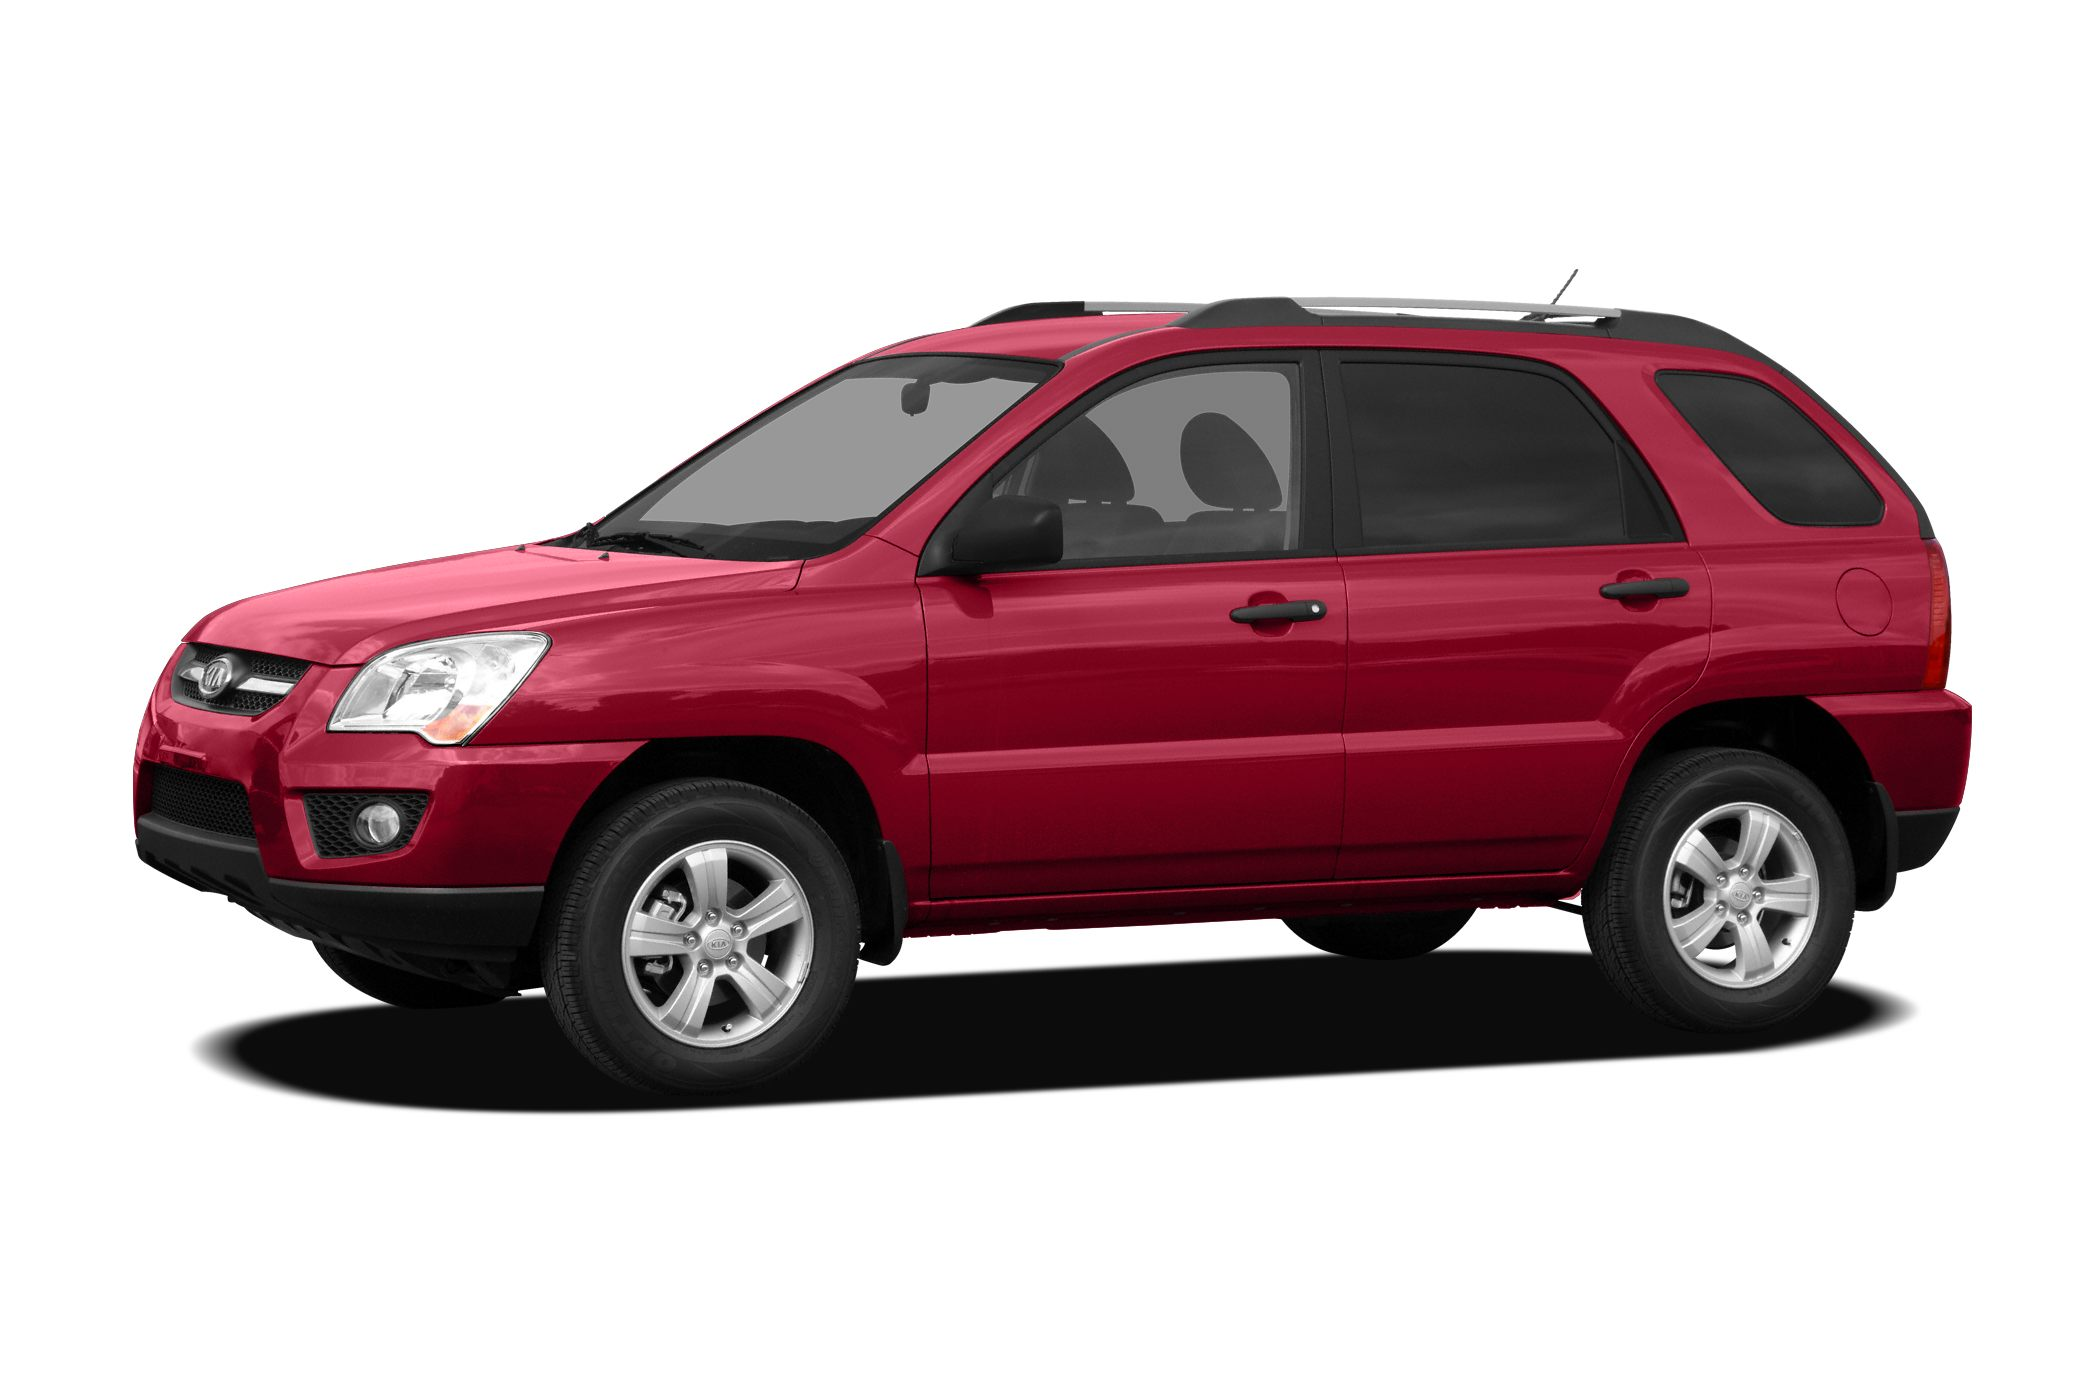 2010 Kia Sportage LX SUV for sale in Asheville for $13,750 with 67,294 miles.